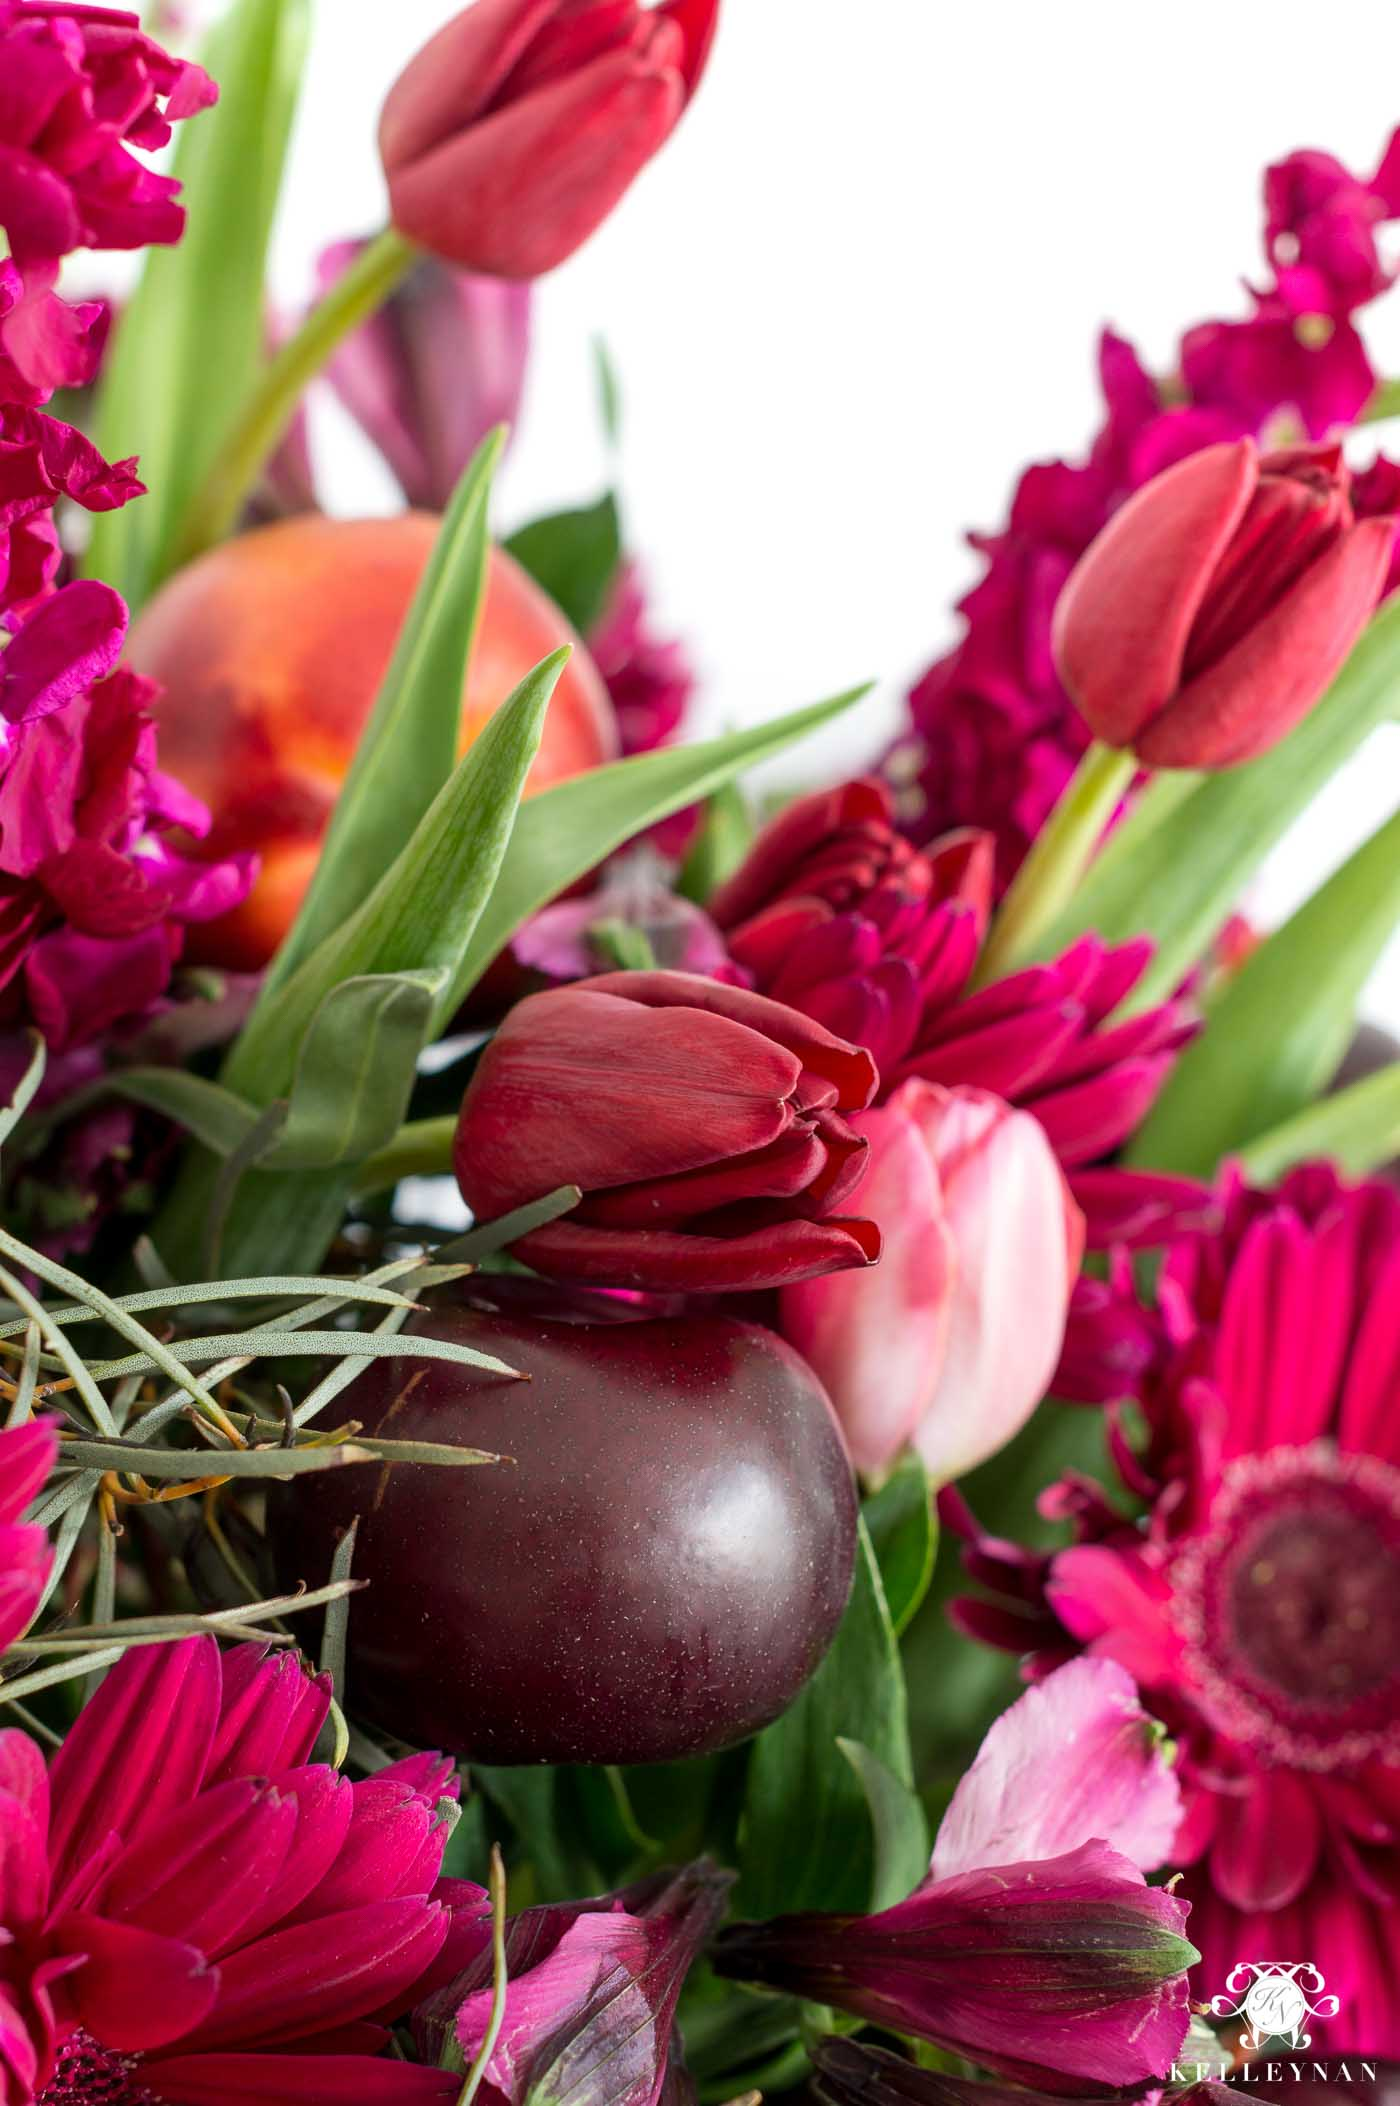 Fruit and flower combinations to create a stunning centerpiece with pink, purple, and red flowers and plums